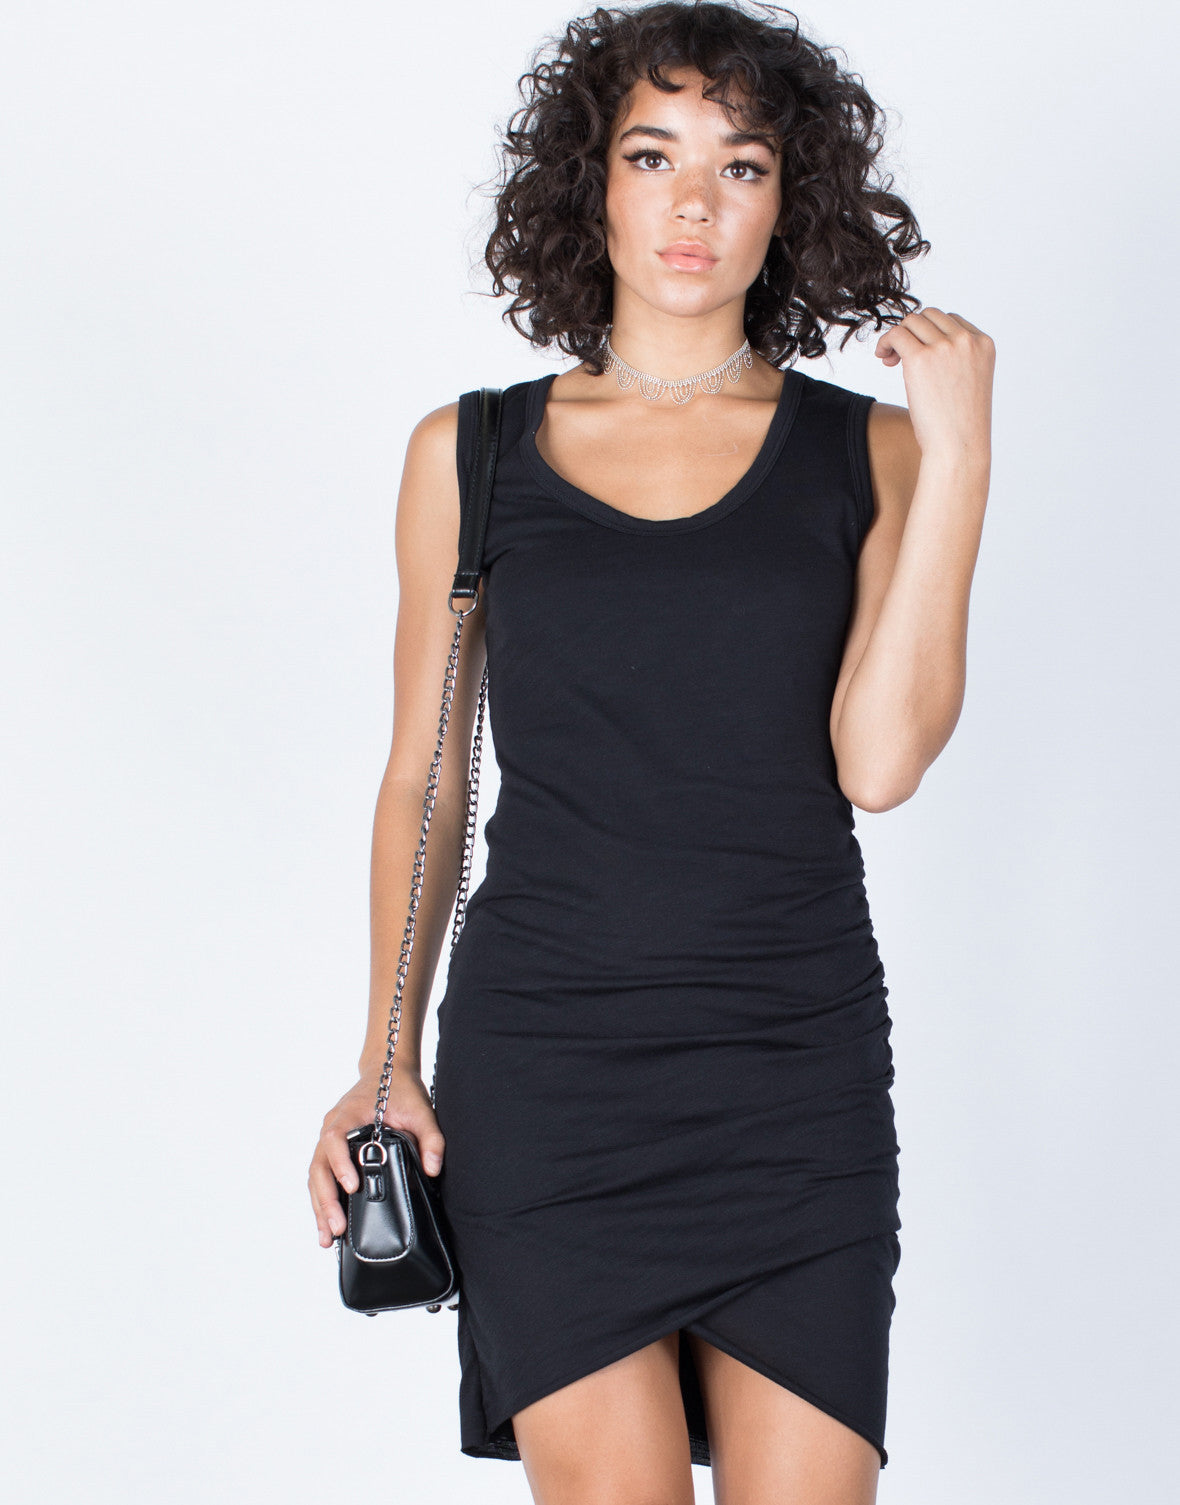 Black Samantha Ruched Dress - Front View